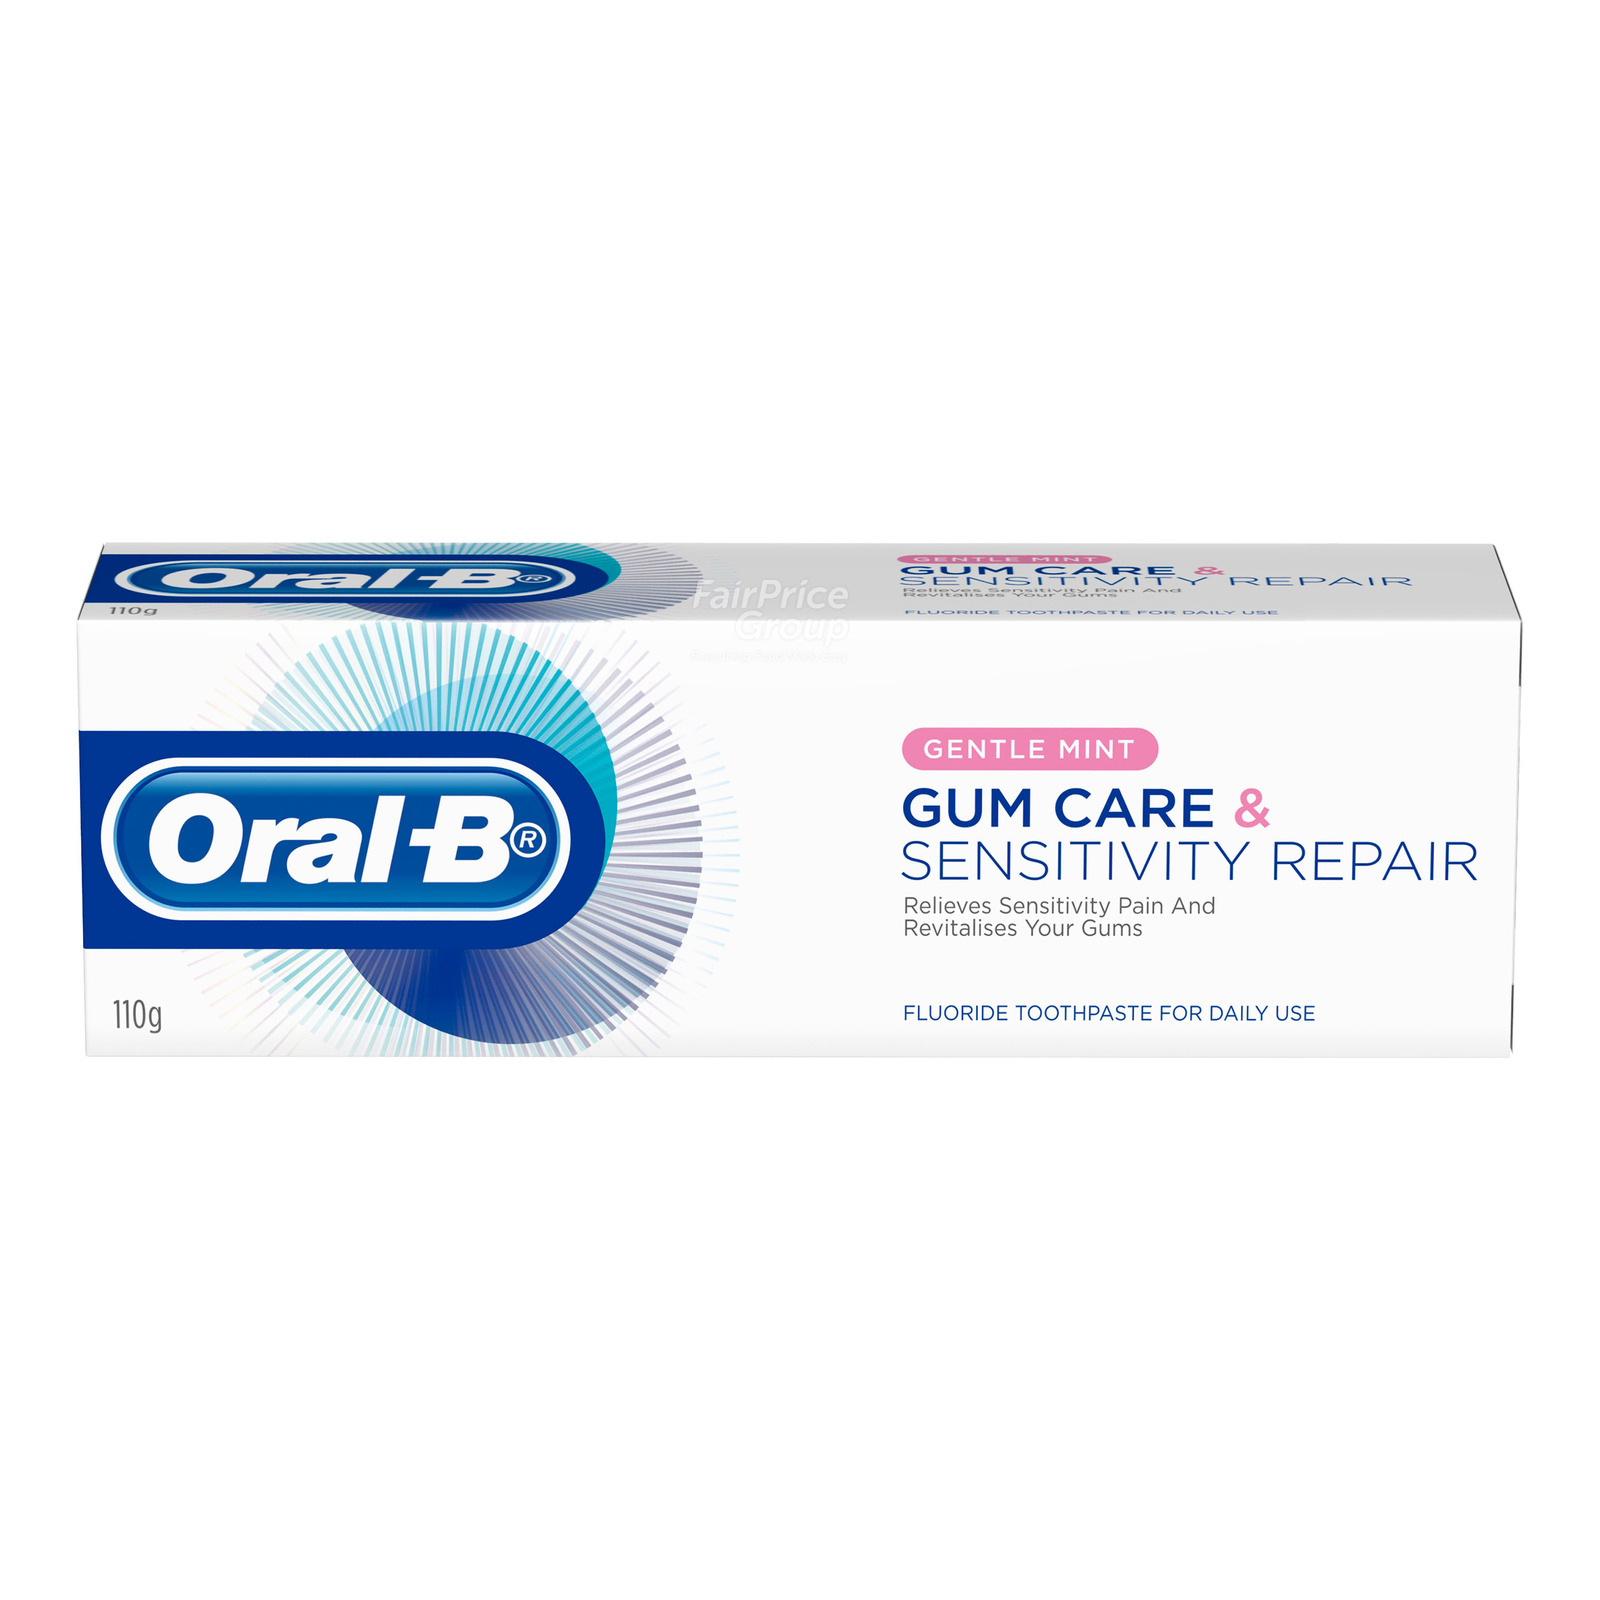 Oral-B Toothpaste - Gum Care & Sensitivity Repair (Gentle Mint)